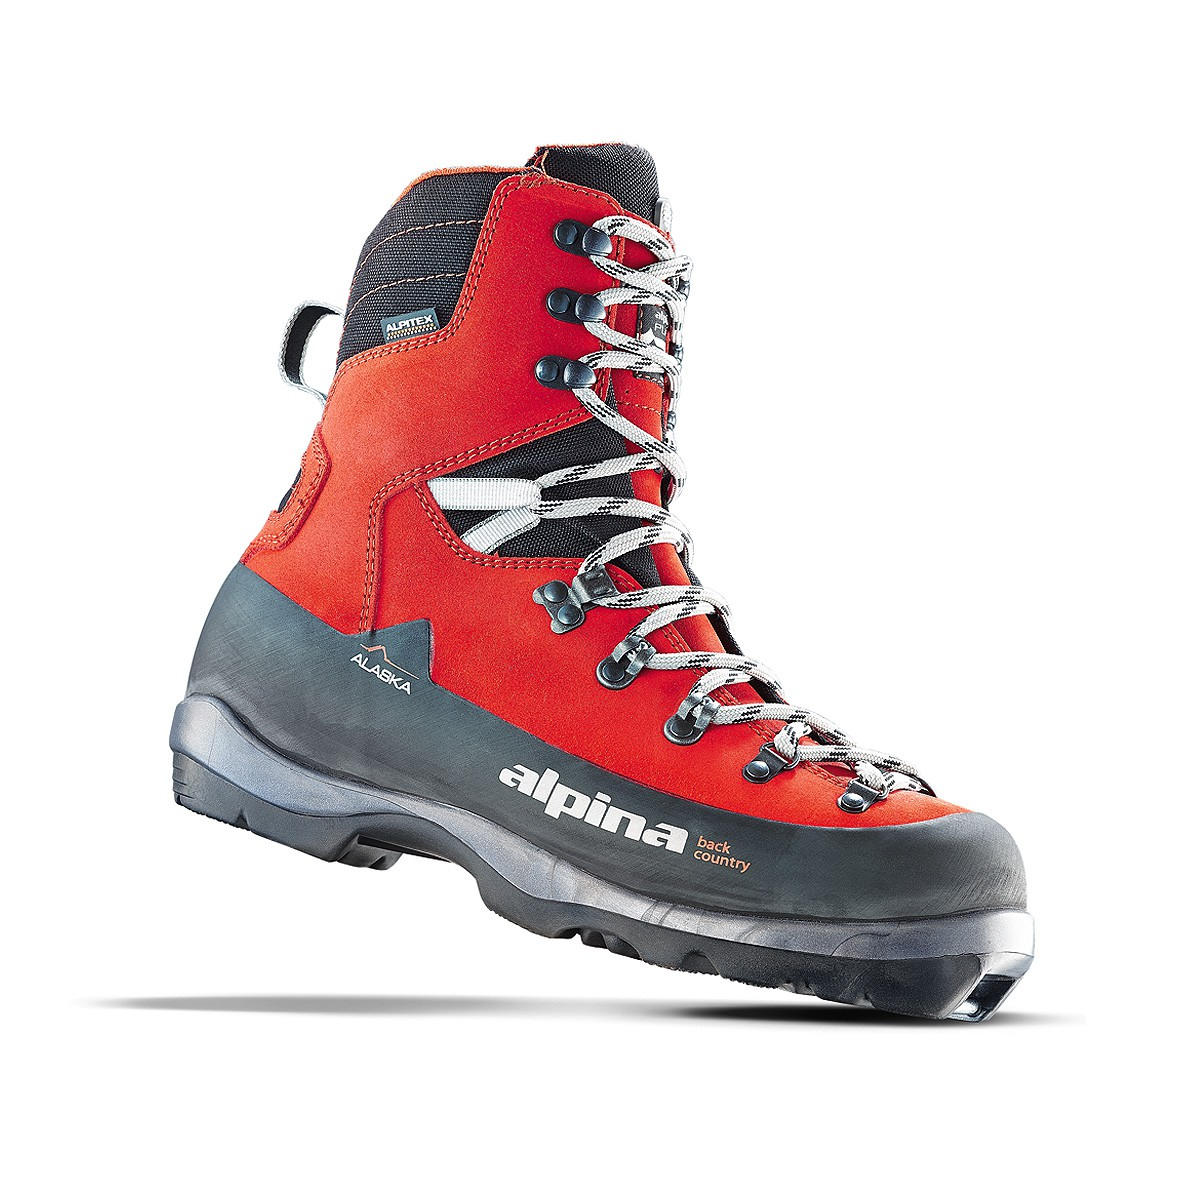 Chaussures Alpina Alaska Nnn Bc Backcountry Randonn 233 E